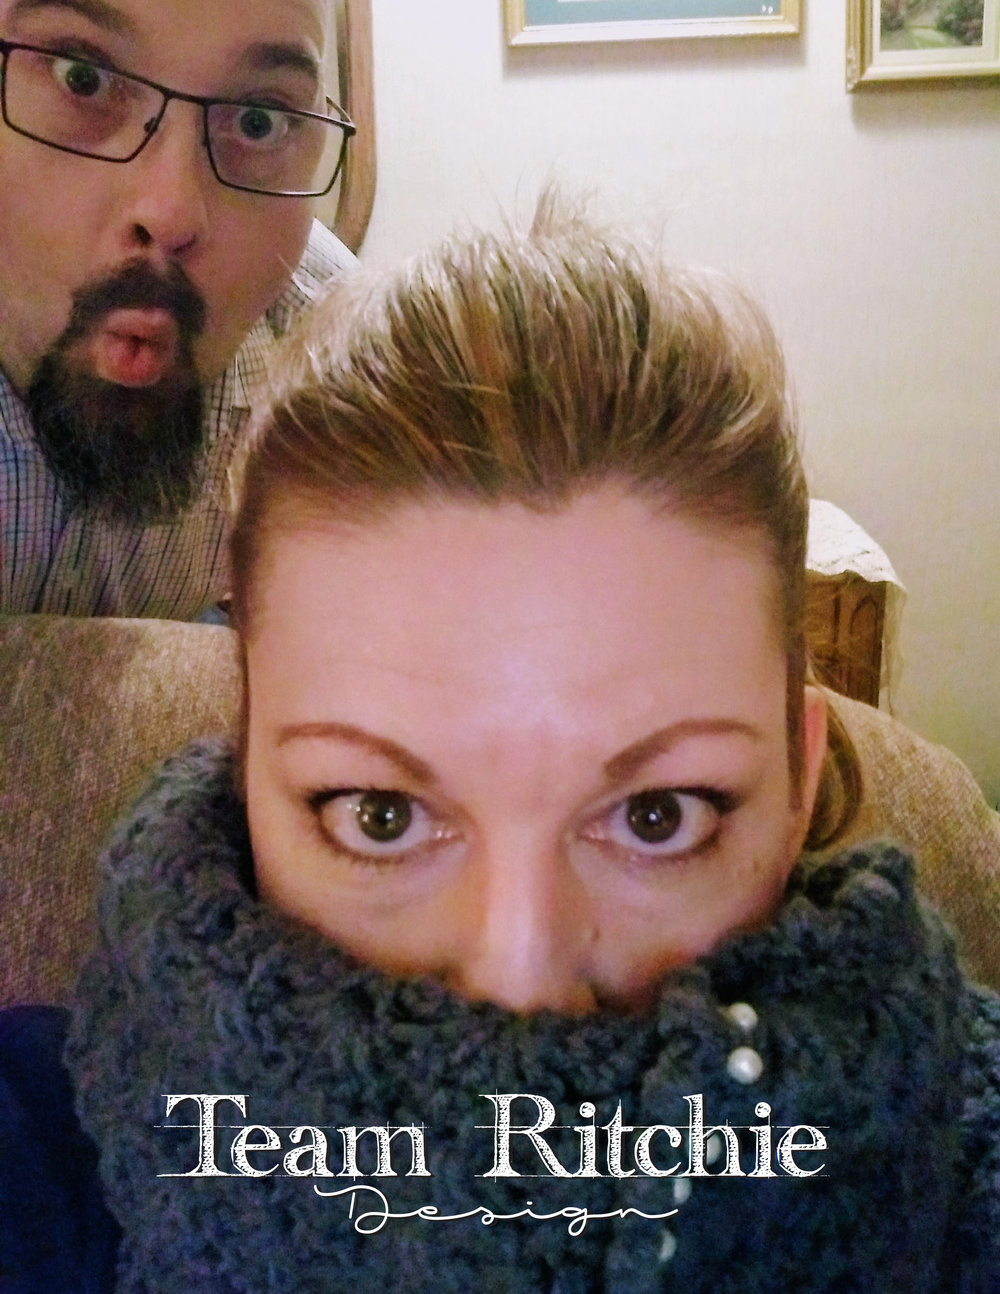 Christian (L), and Heather (R) Ritchie, of Team Ritchie